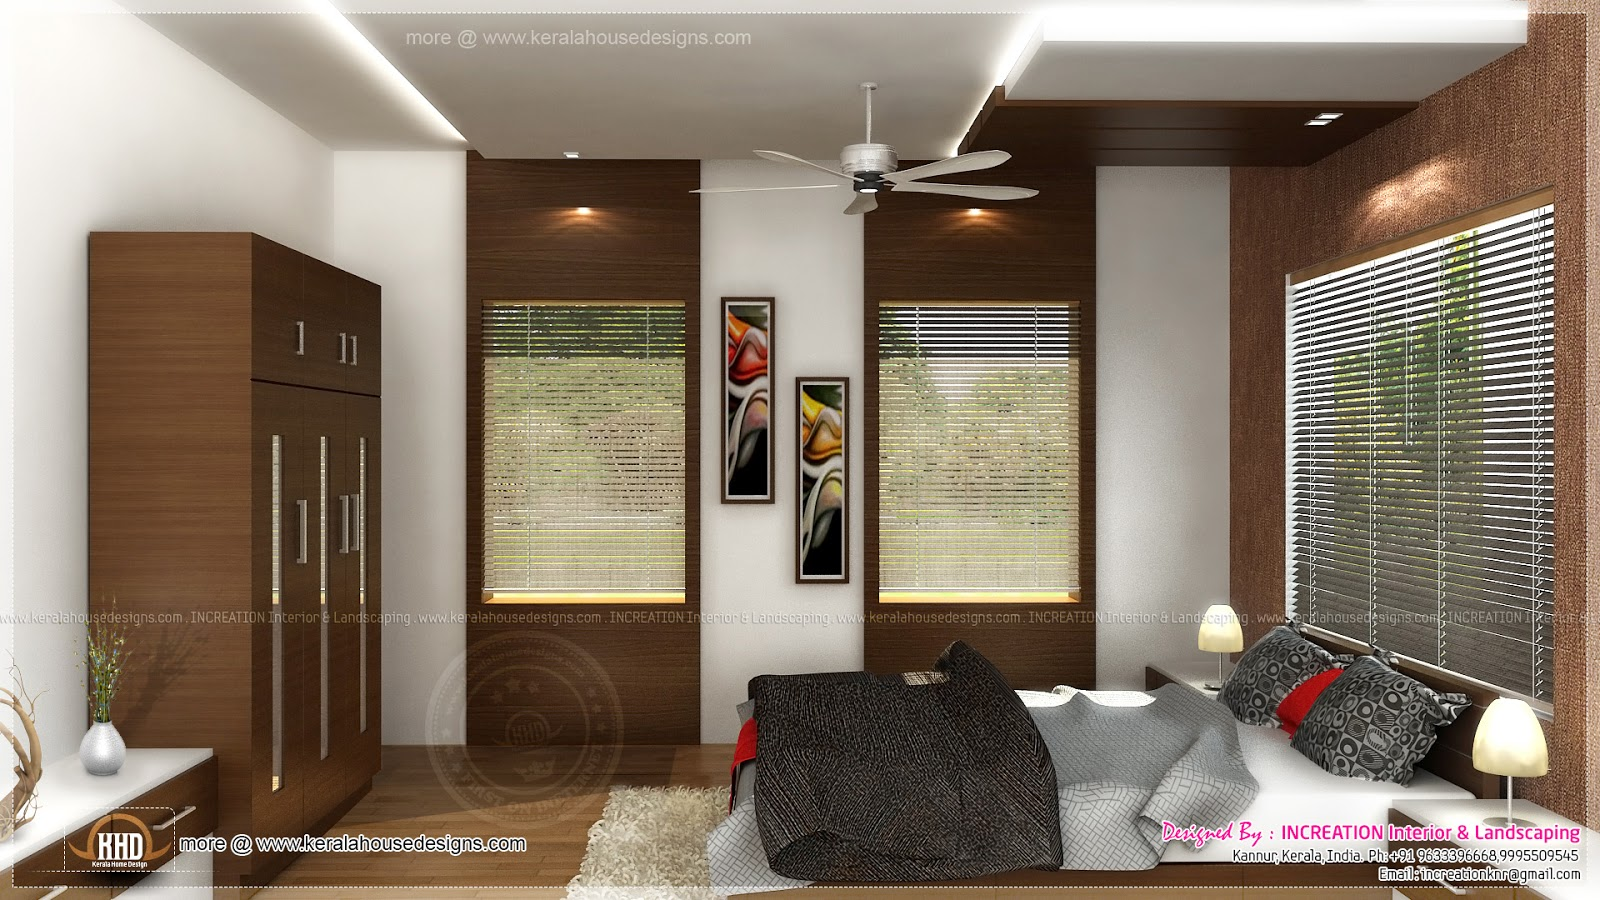 Interior designs from kannur kerala home kerala plans - Interior design of small home ...